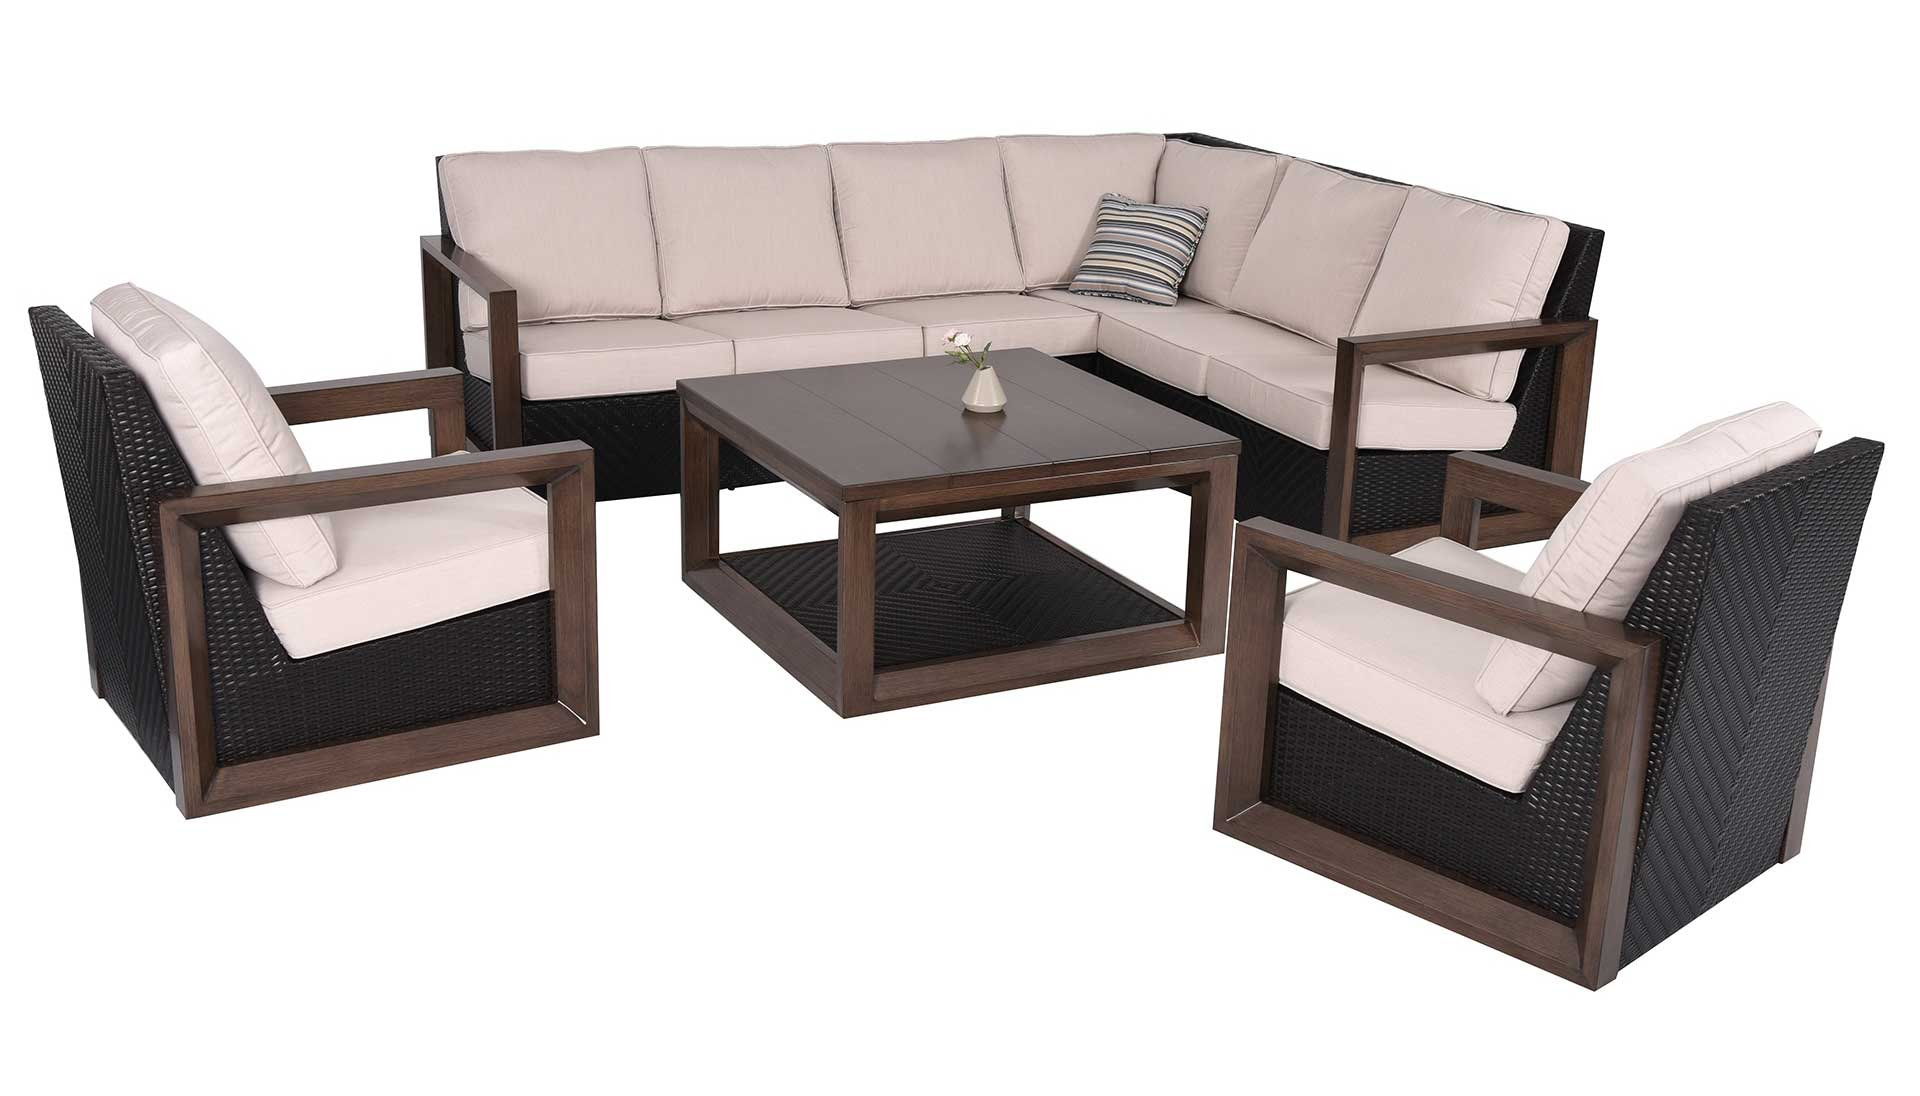 Delano 5 Piece Outdoor Sectional Set by Patio Time